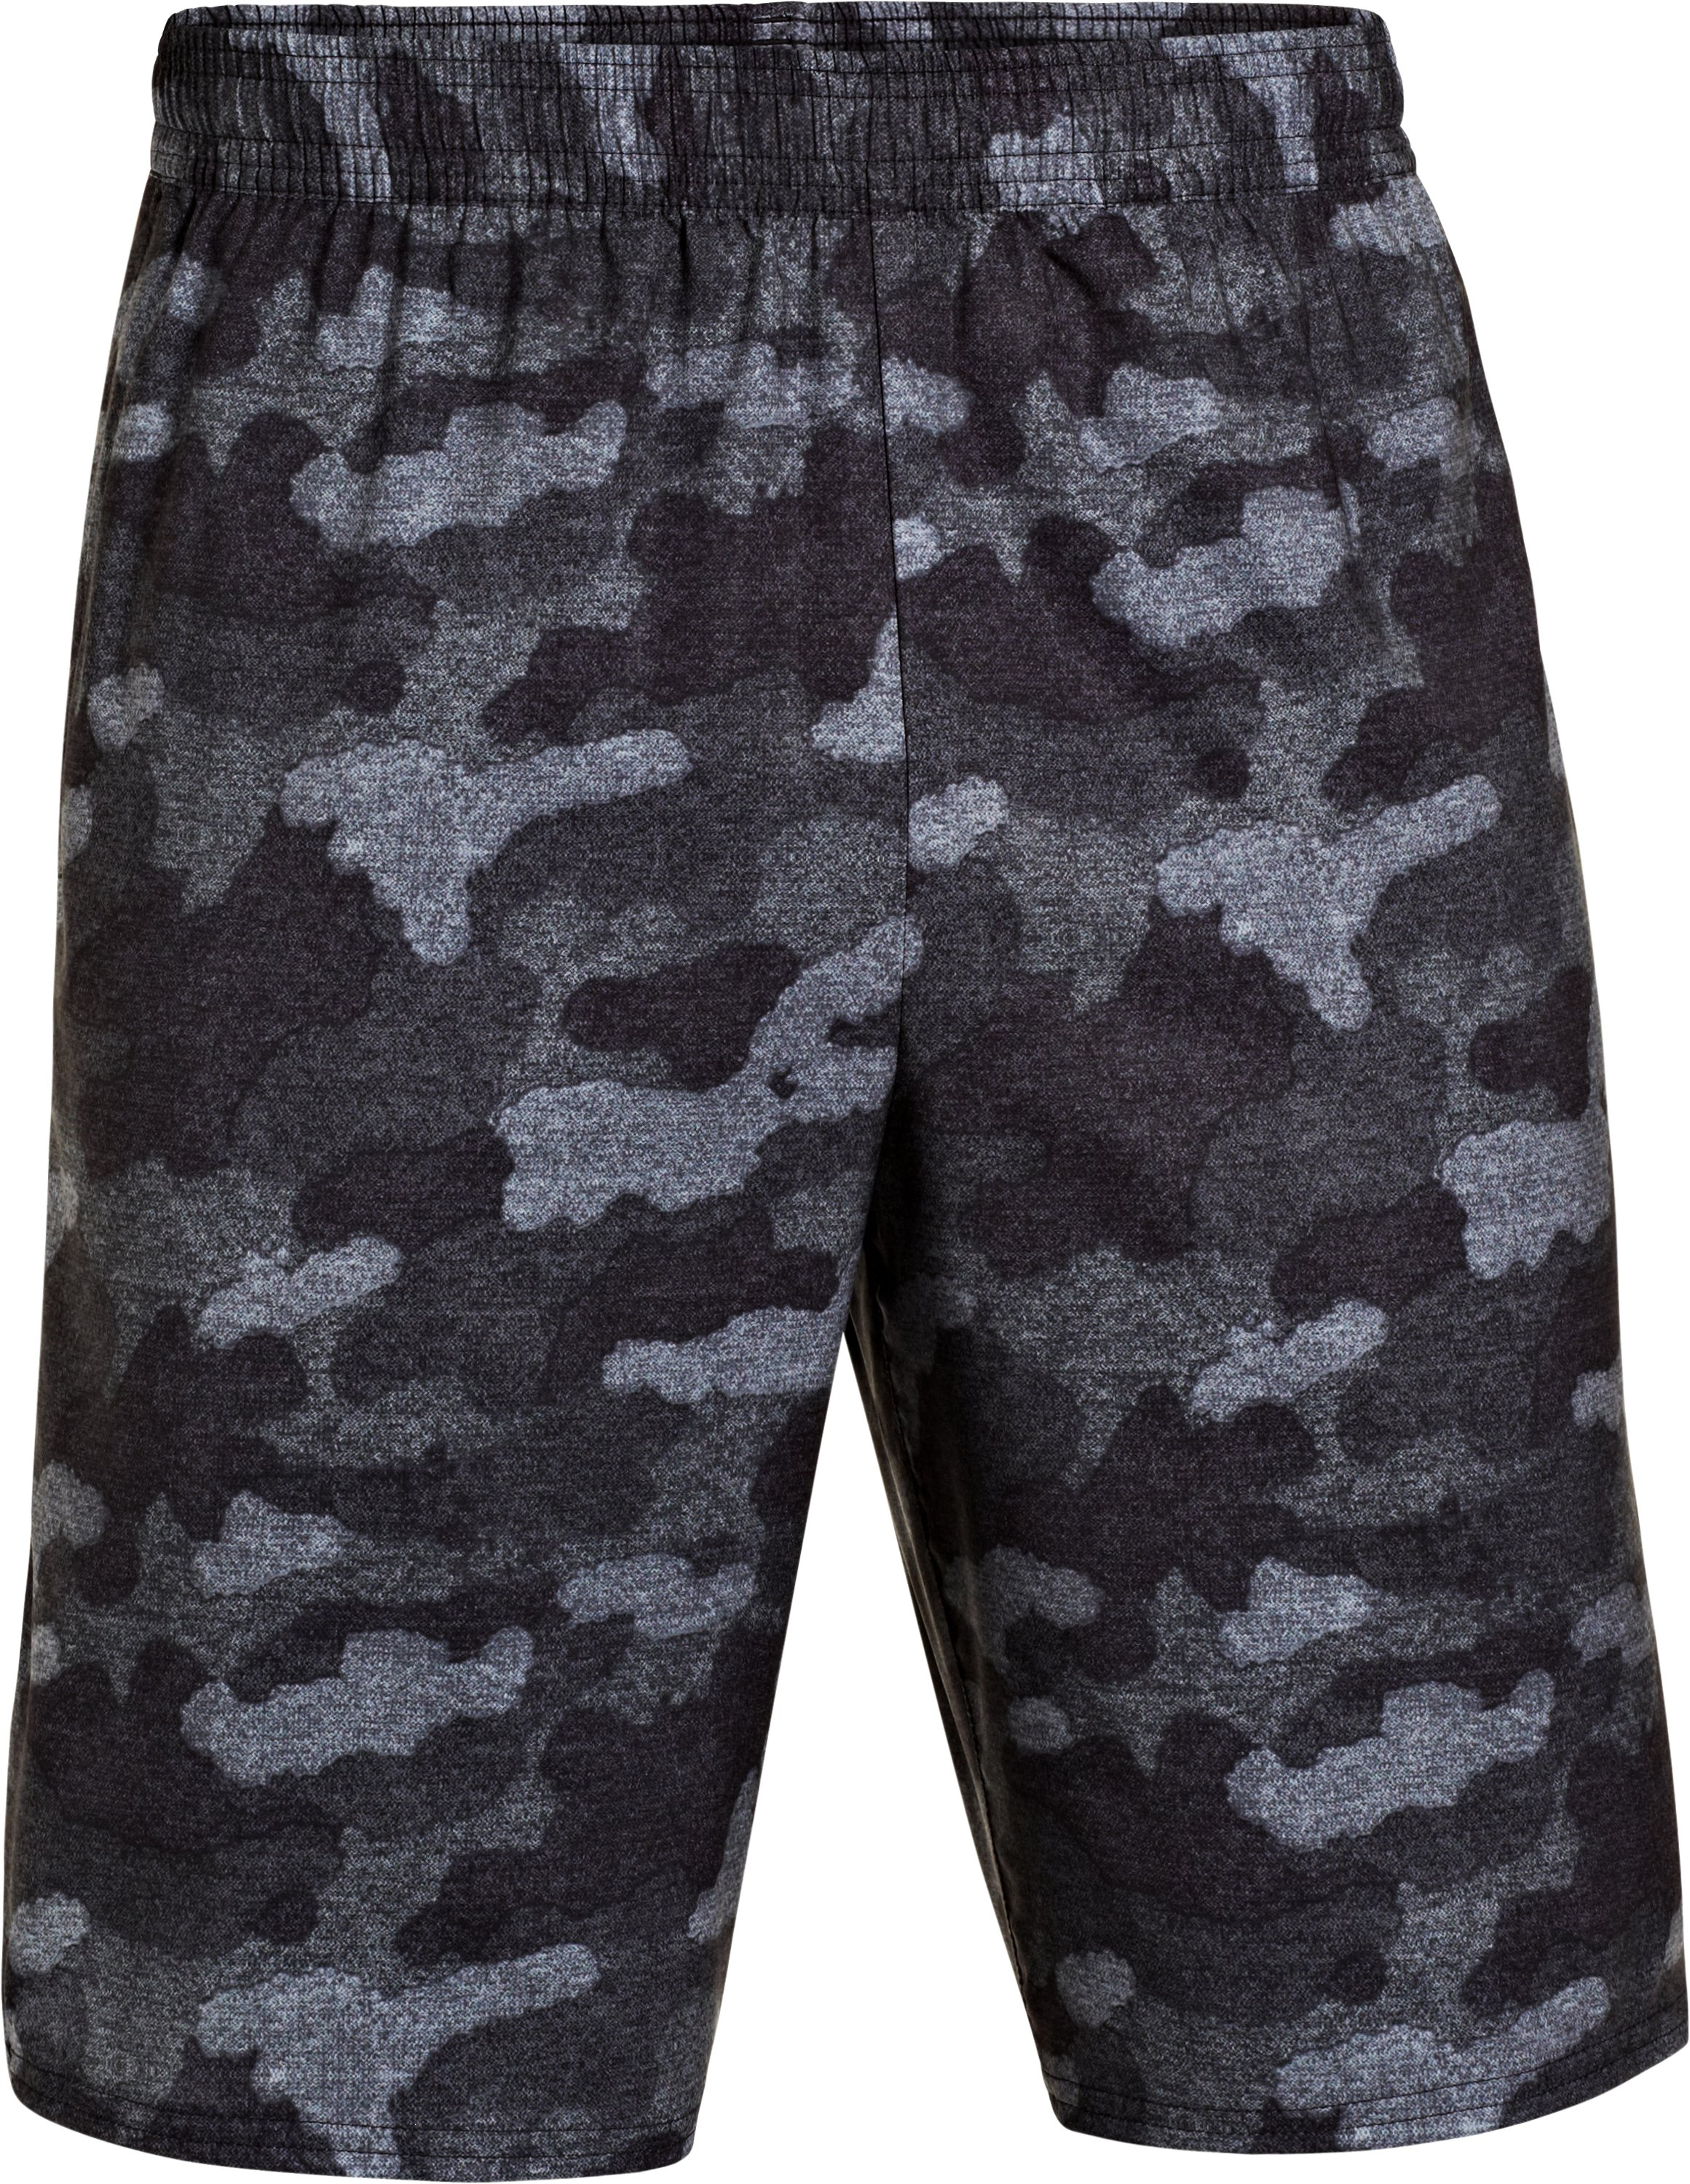 Men's UA Pasture Amphibious Boardshorts, Charcoal